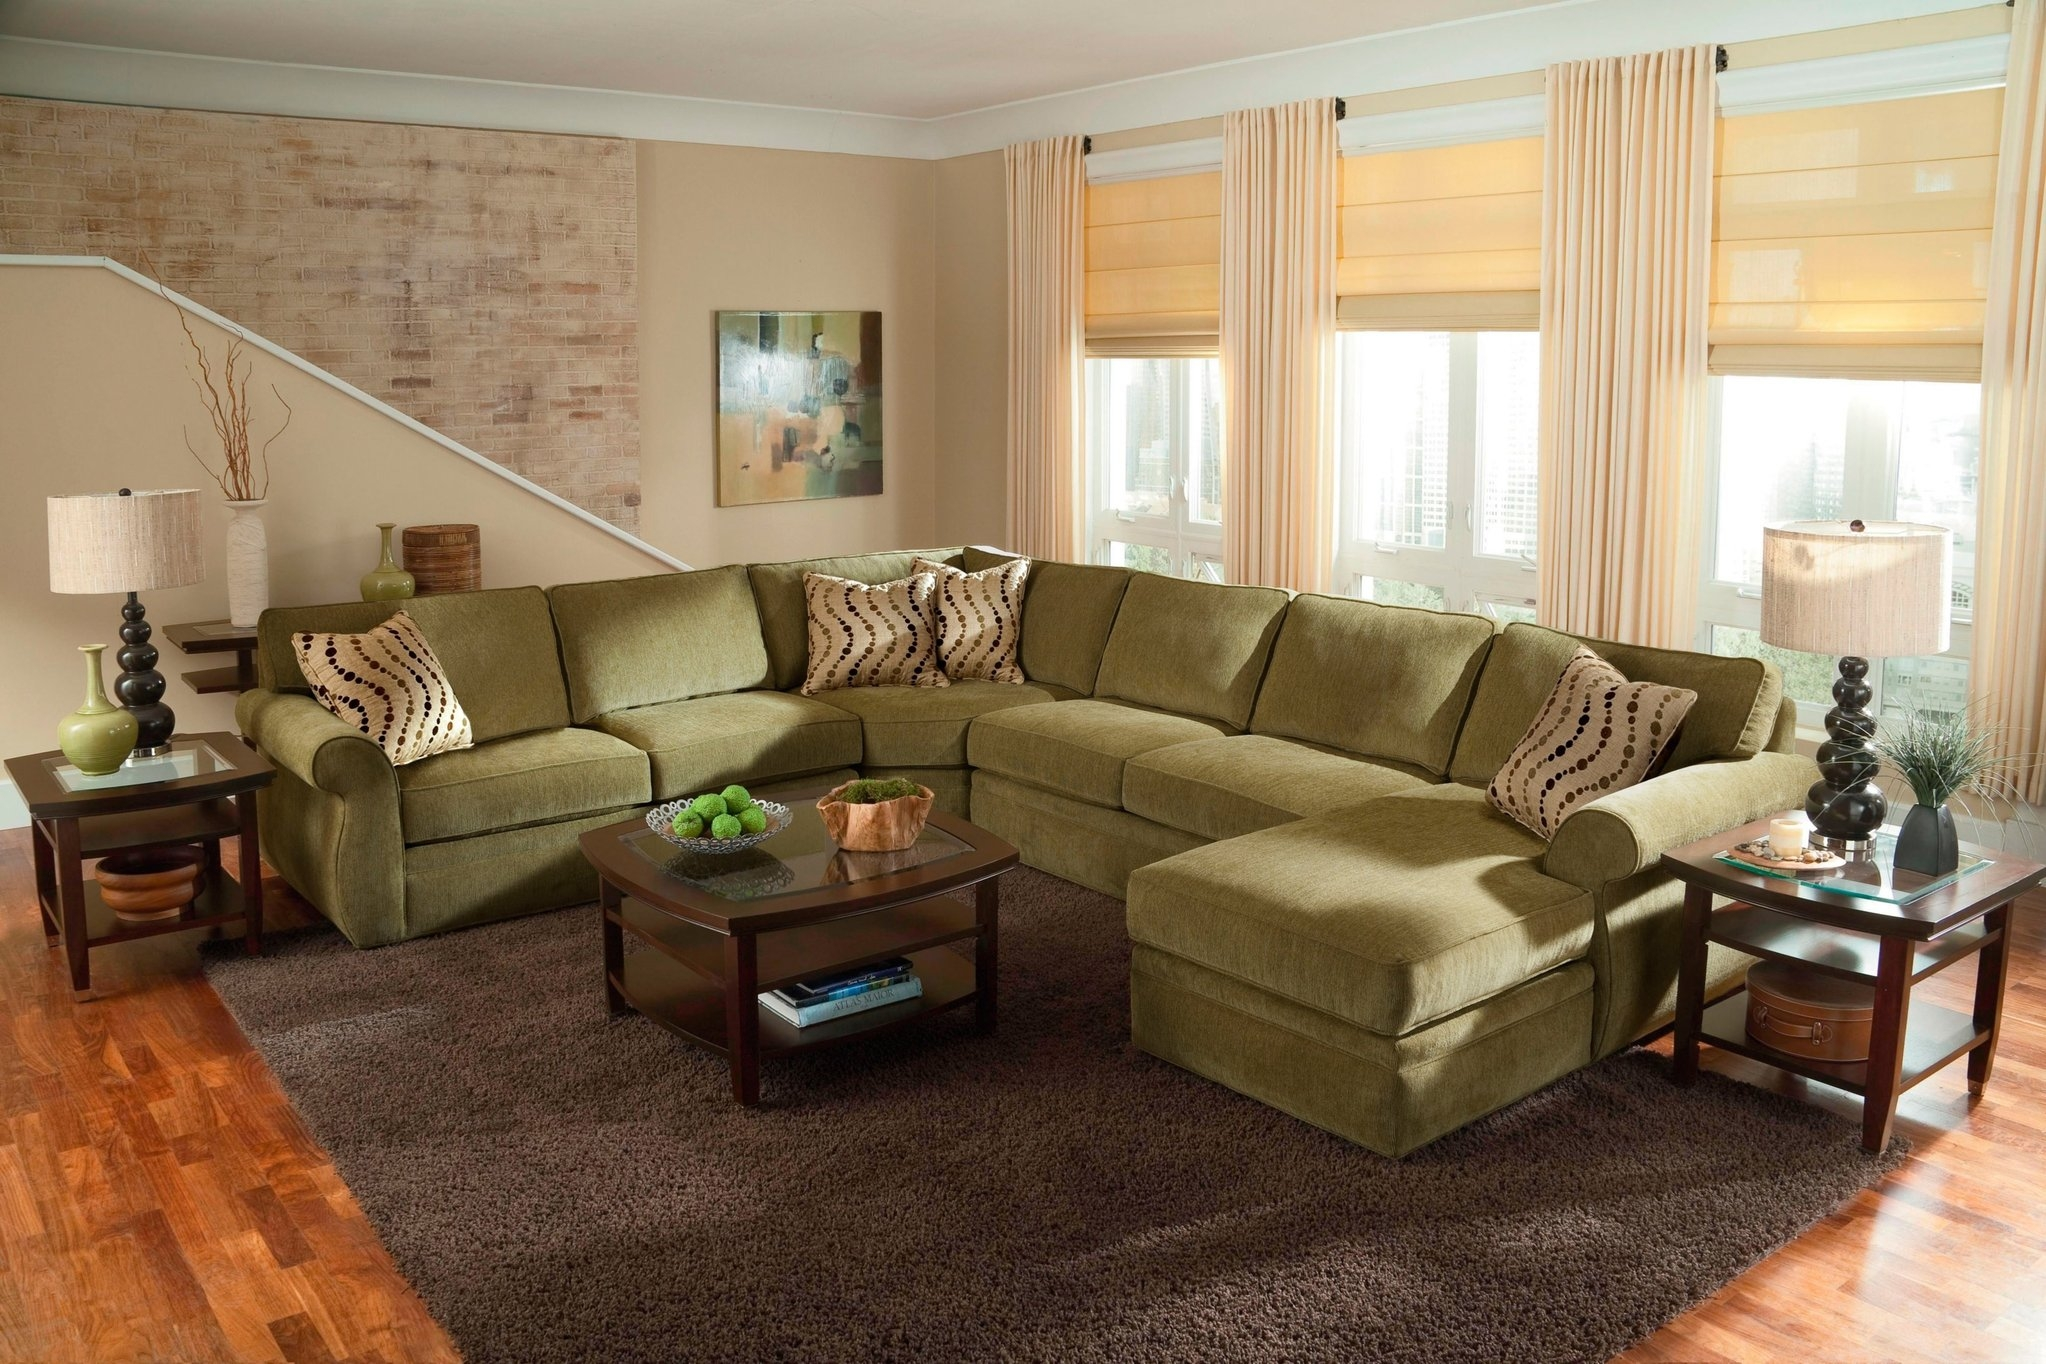 Extra Large Sectional Sofas Home Design Ideas With Extra Large Sectional Sofas (View 10 of 15)